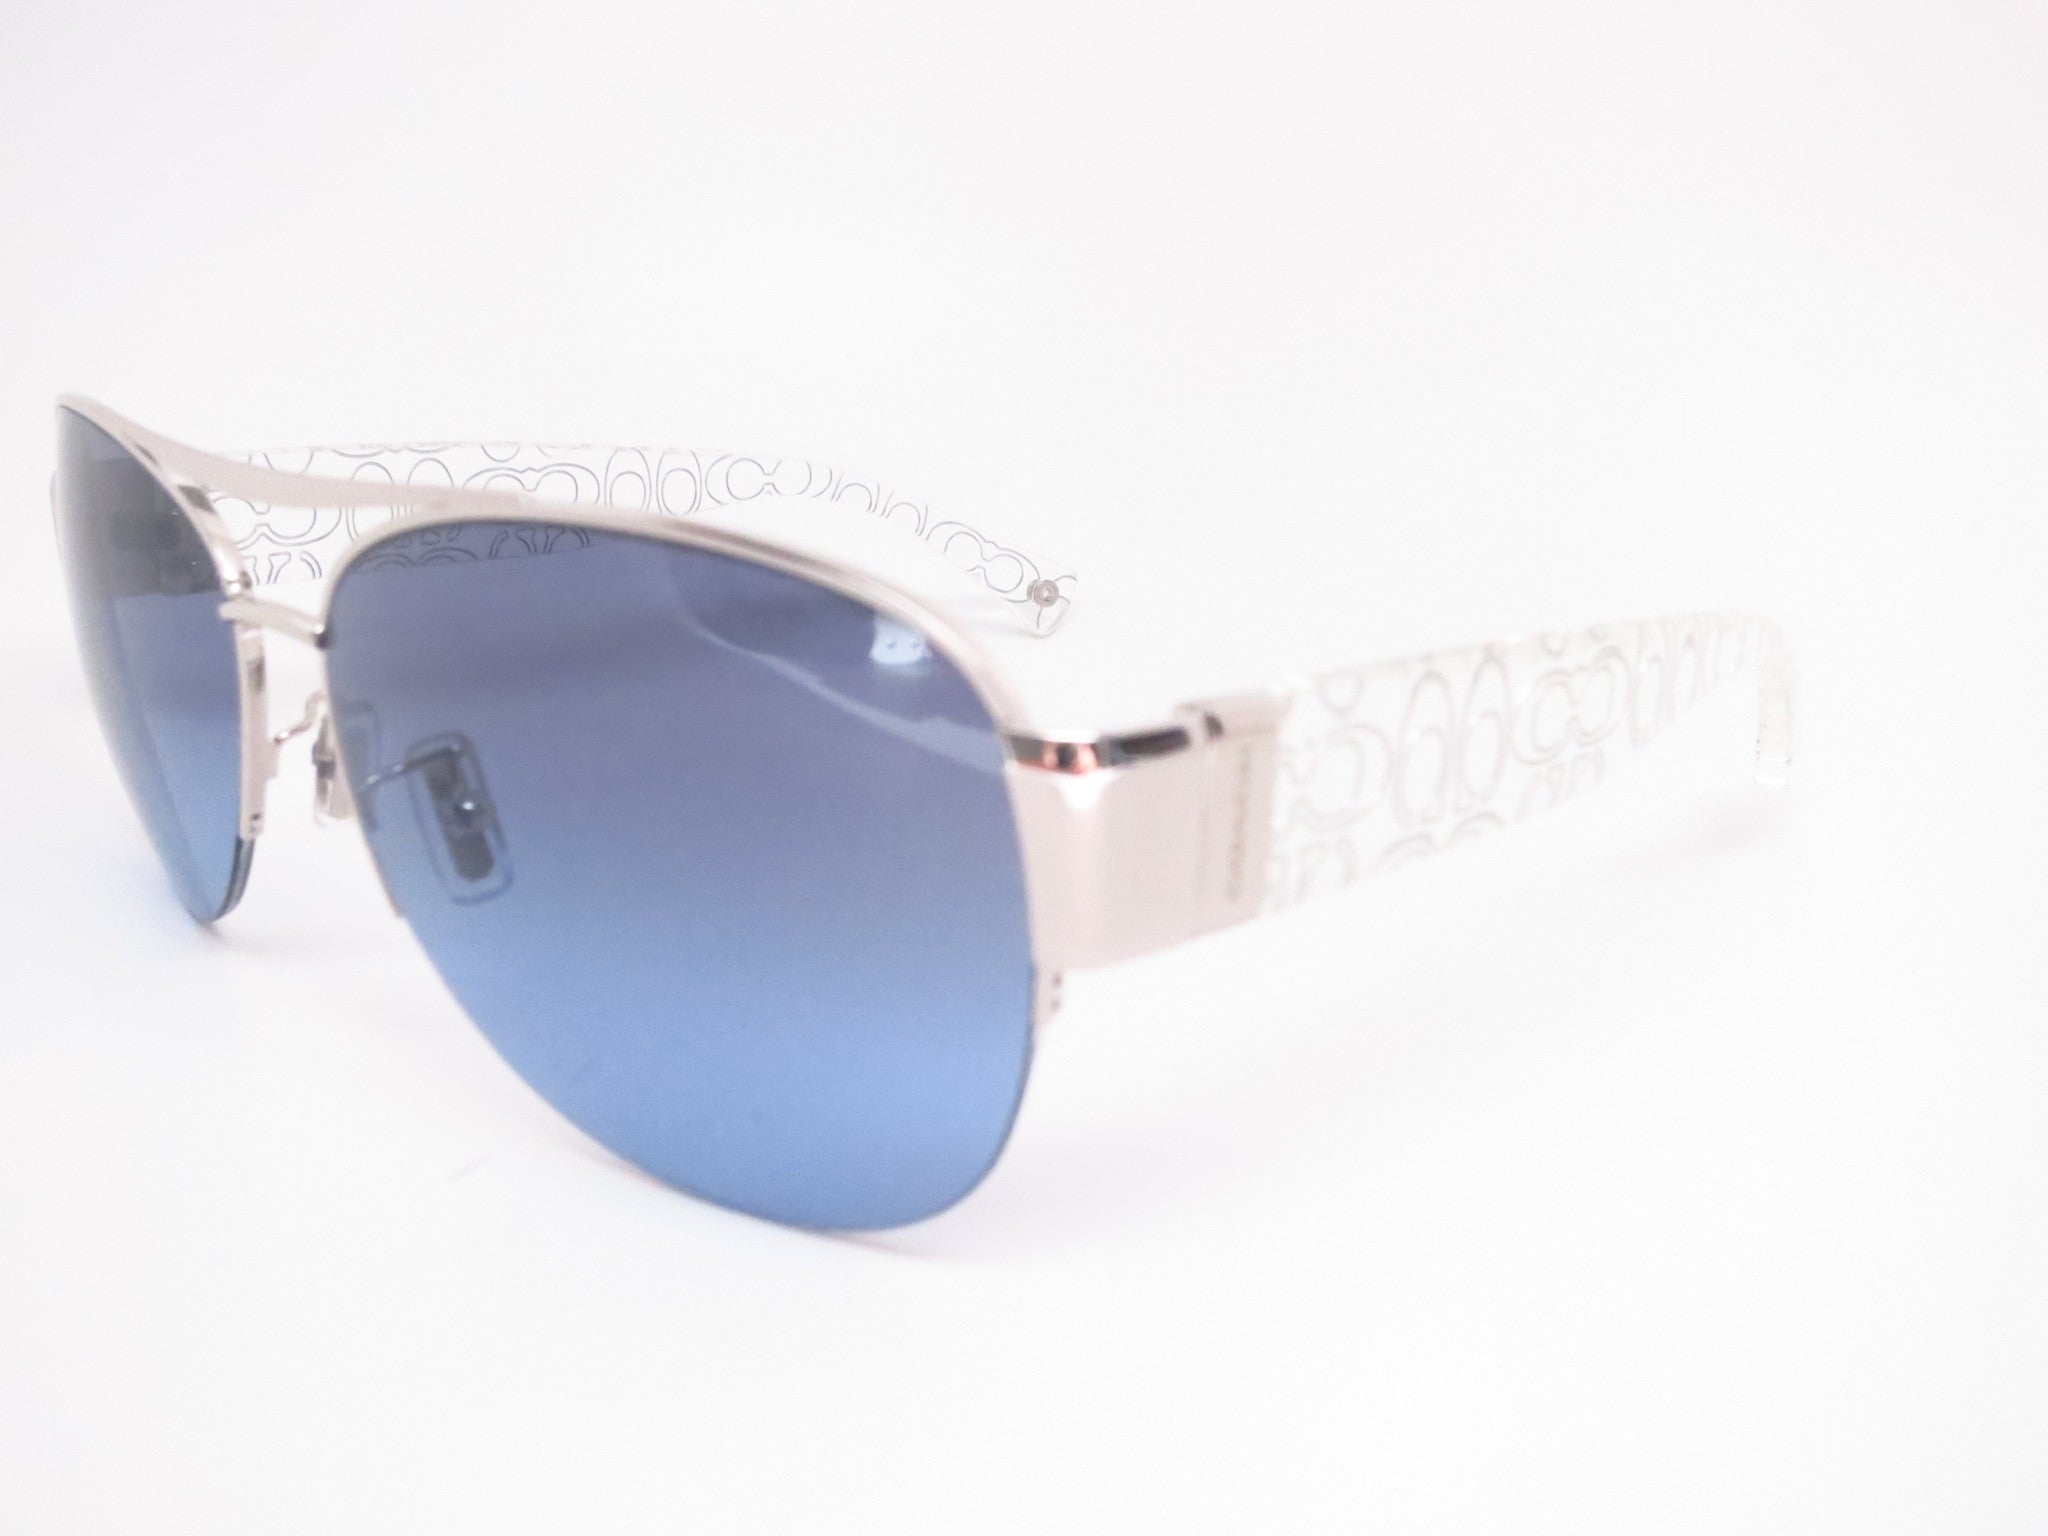 95f4fdc7d5 ... official store coach hc 7042 addison 9177 17 silver crystal silver  sunglasses eye heart shades b549d